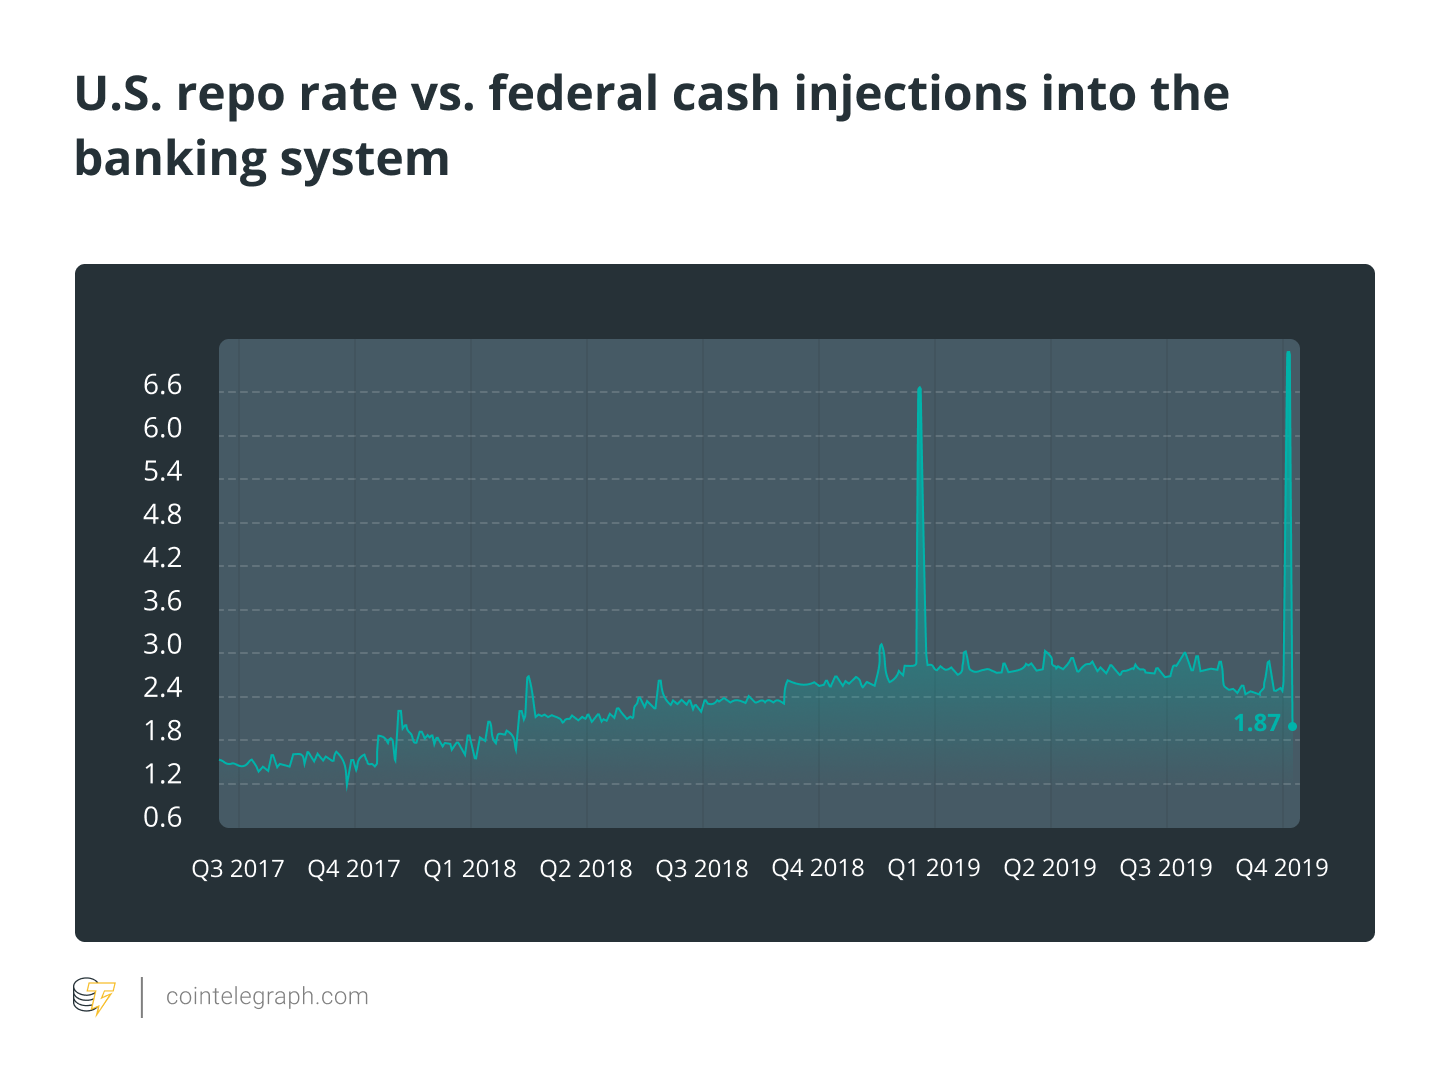 U.S. repo rate vs. federal cash injections into the banking system